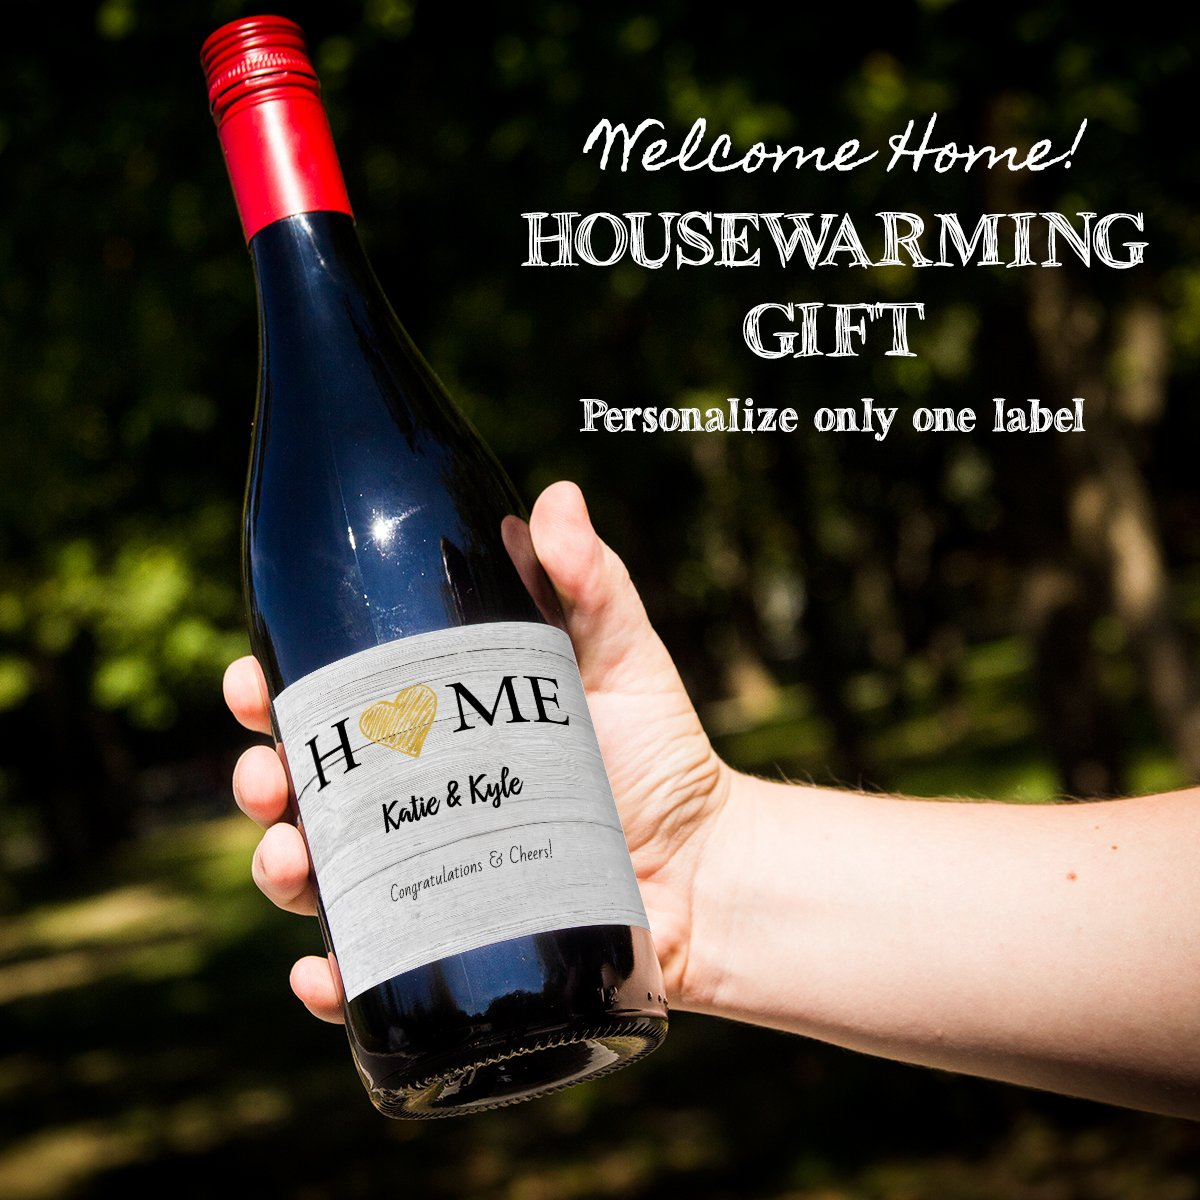 642189eaf16 Looking for a home closing or house warming gift? Give them their favorite # wine with a custom label. Order only one!